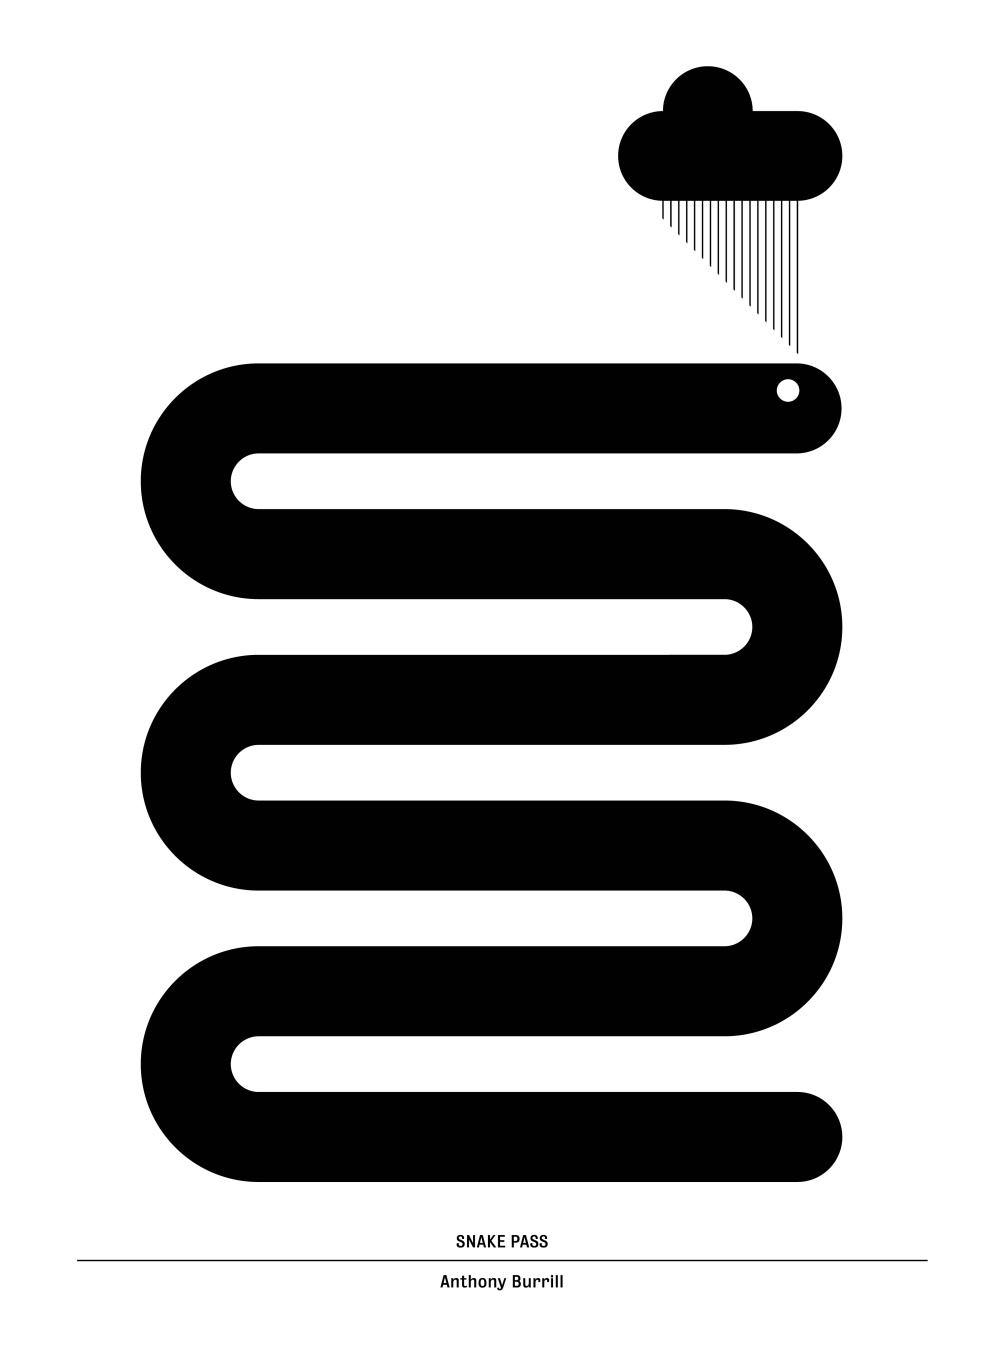 Snake Pass, by Anthony Burrill